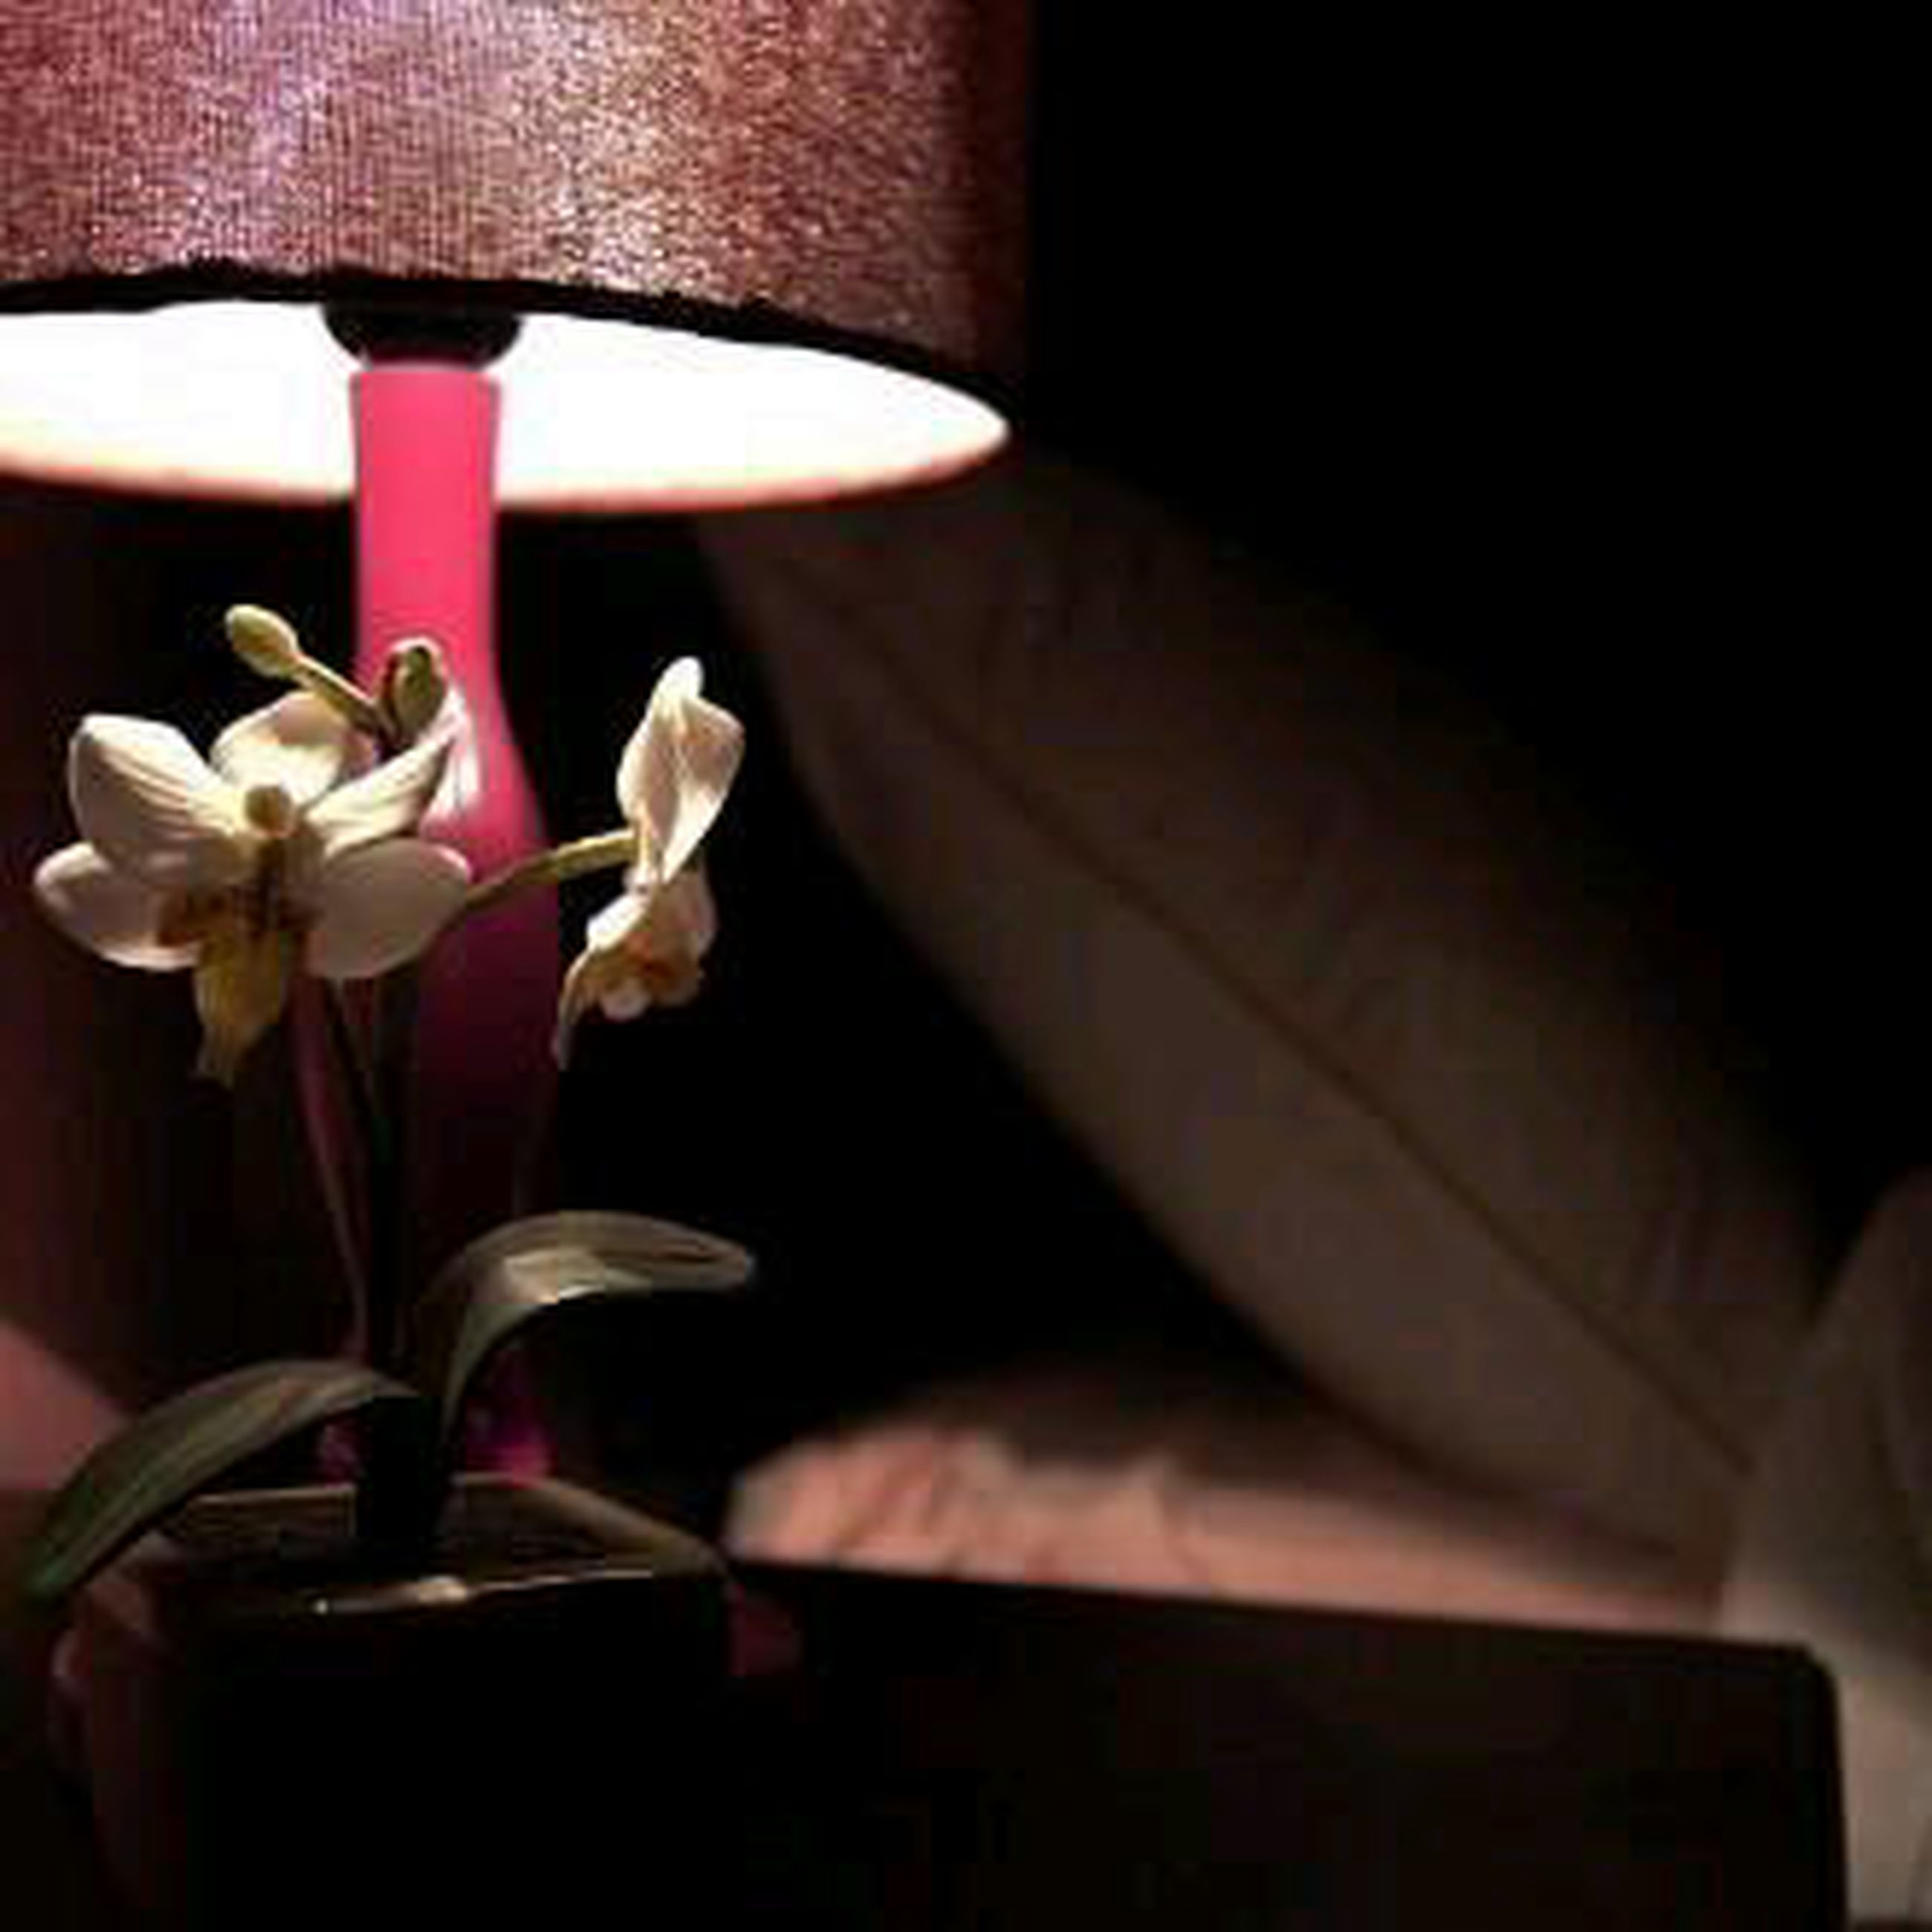 indoors, table, chair, home interior, flower, vase, potted plant, absence, still life, close-up, no people, furniture, sunlight, wall - building feature, empty, electric lamp, decoration, house, shadow, window